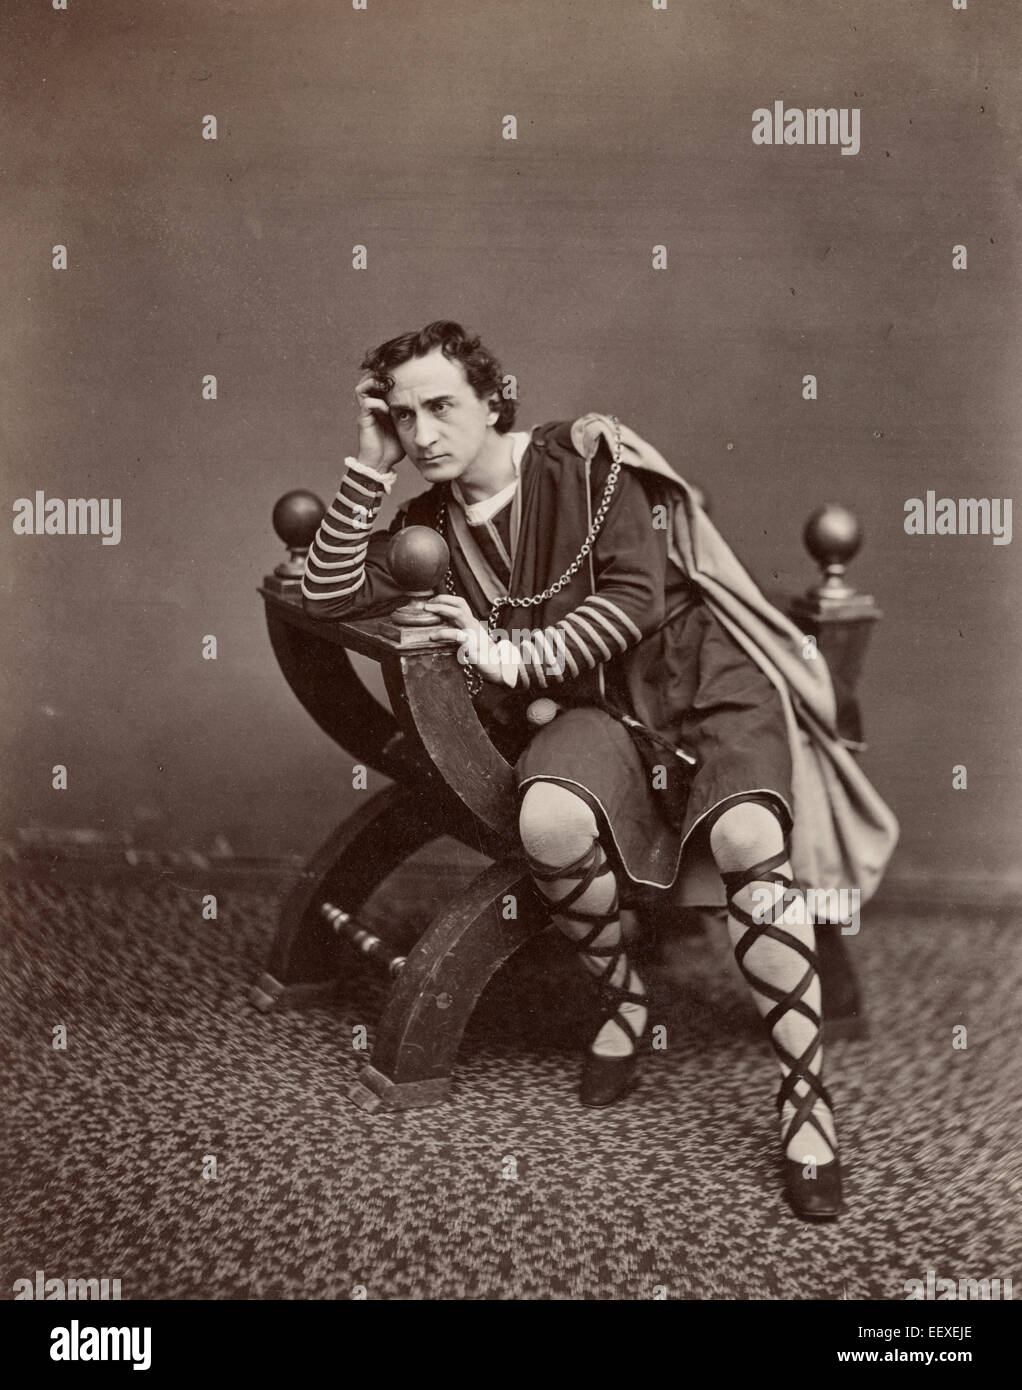 Edwin Booth. Hamlet 'To be or not to be, that is the question' - Edwin Booth in the character of Hamlet, - Stock Image